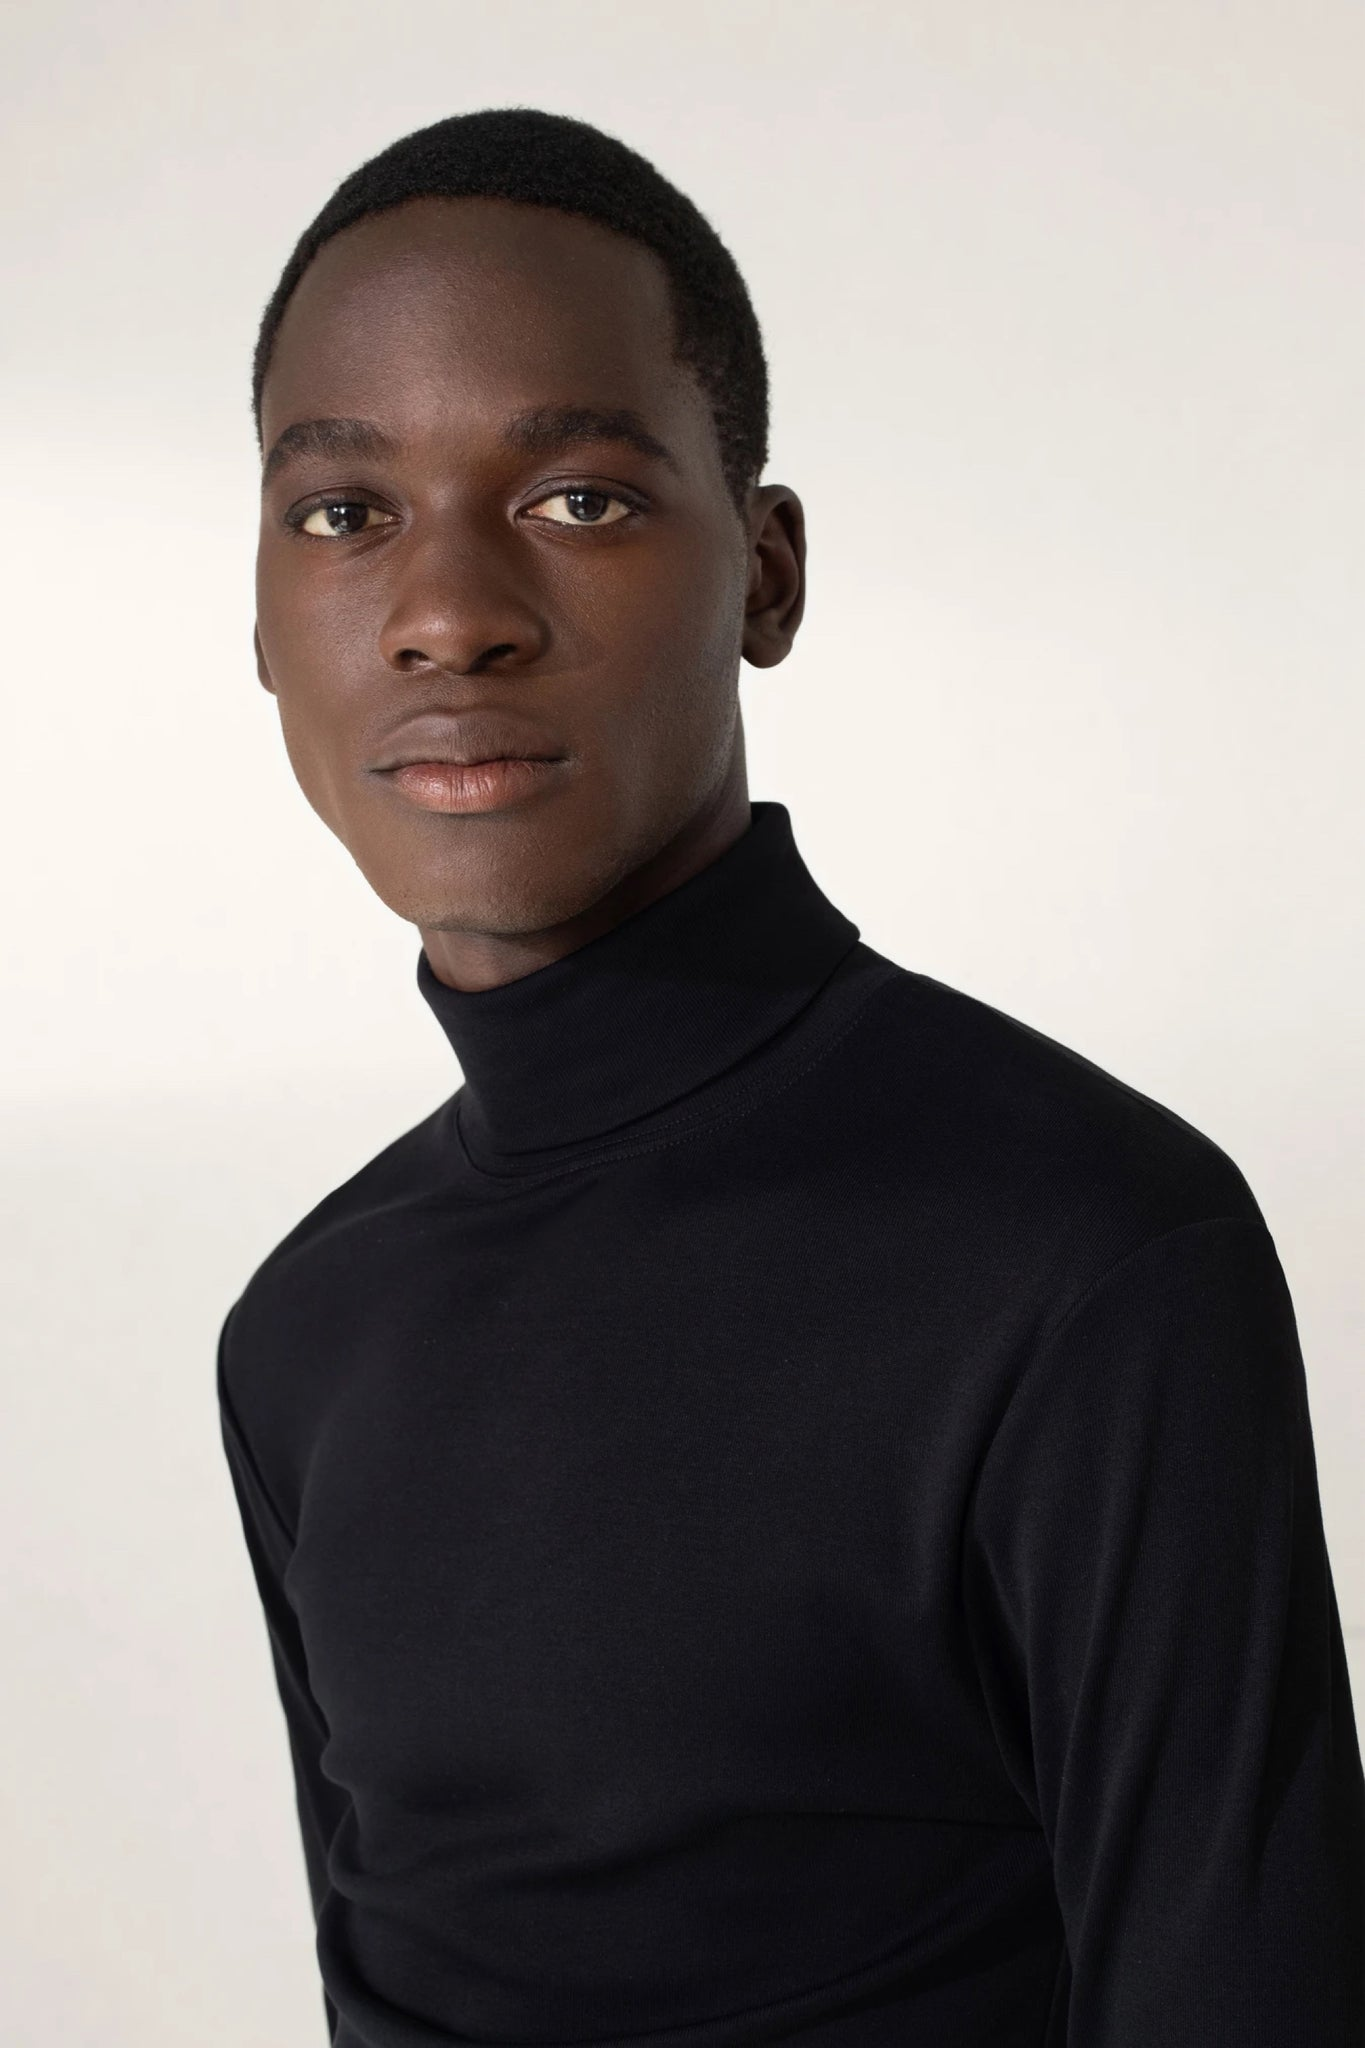 Rib turtleneck black